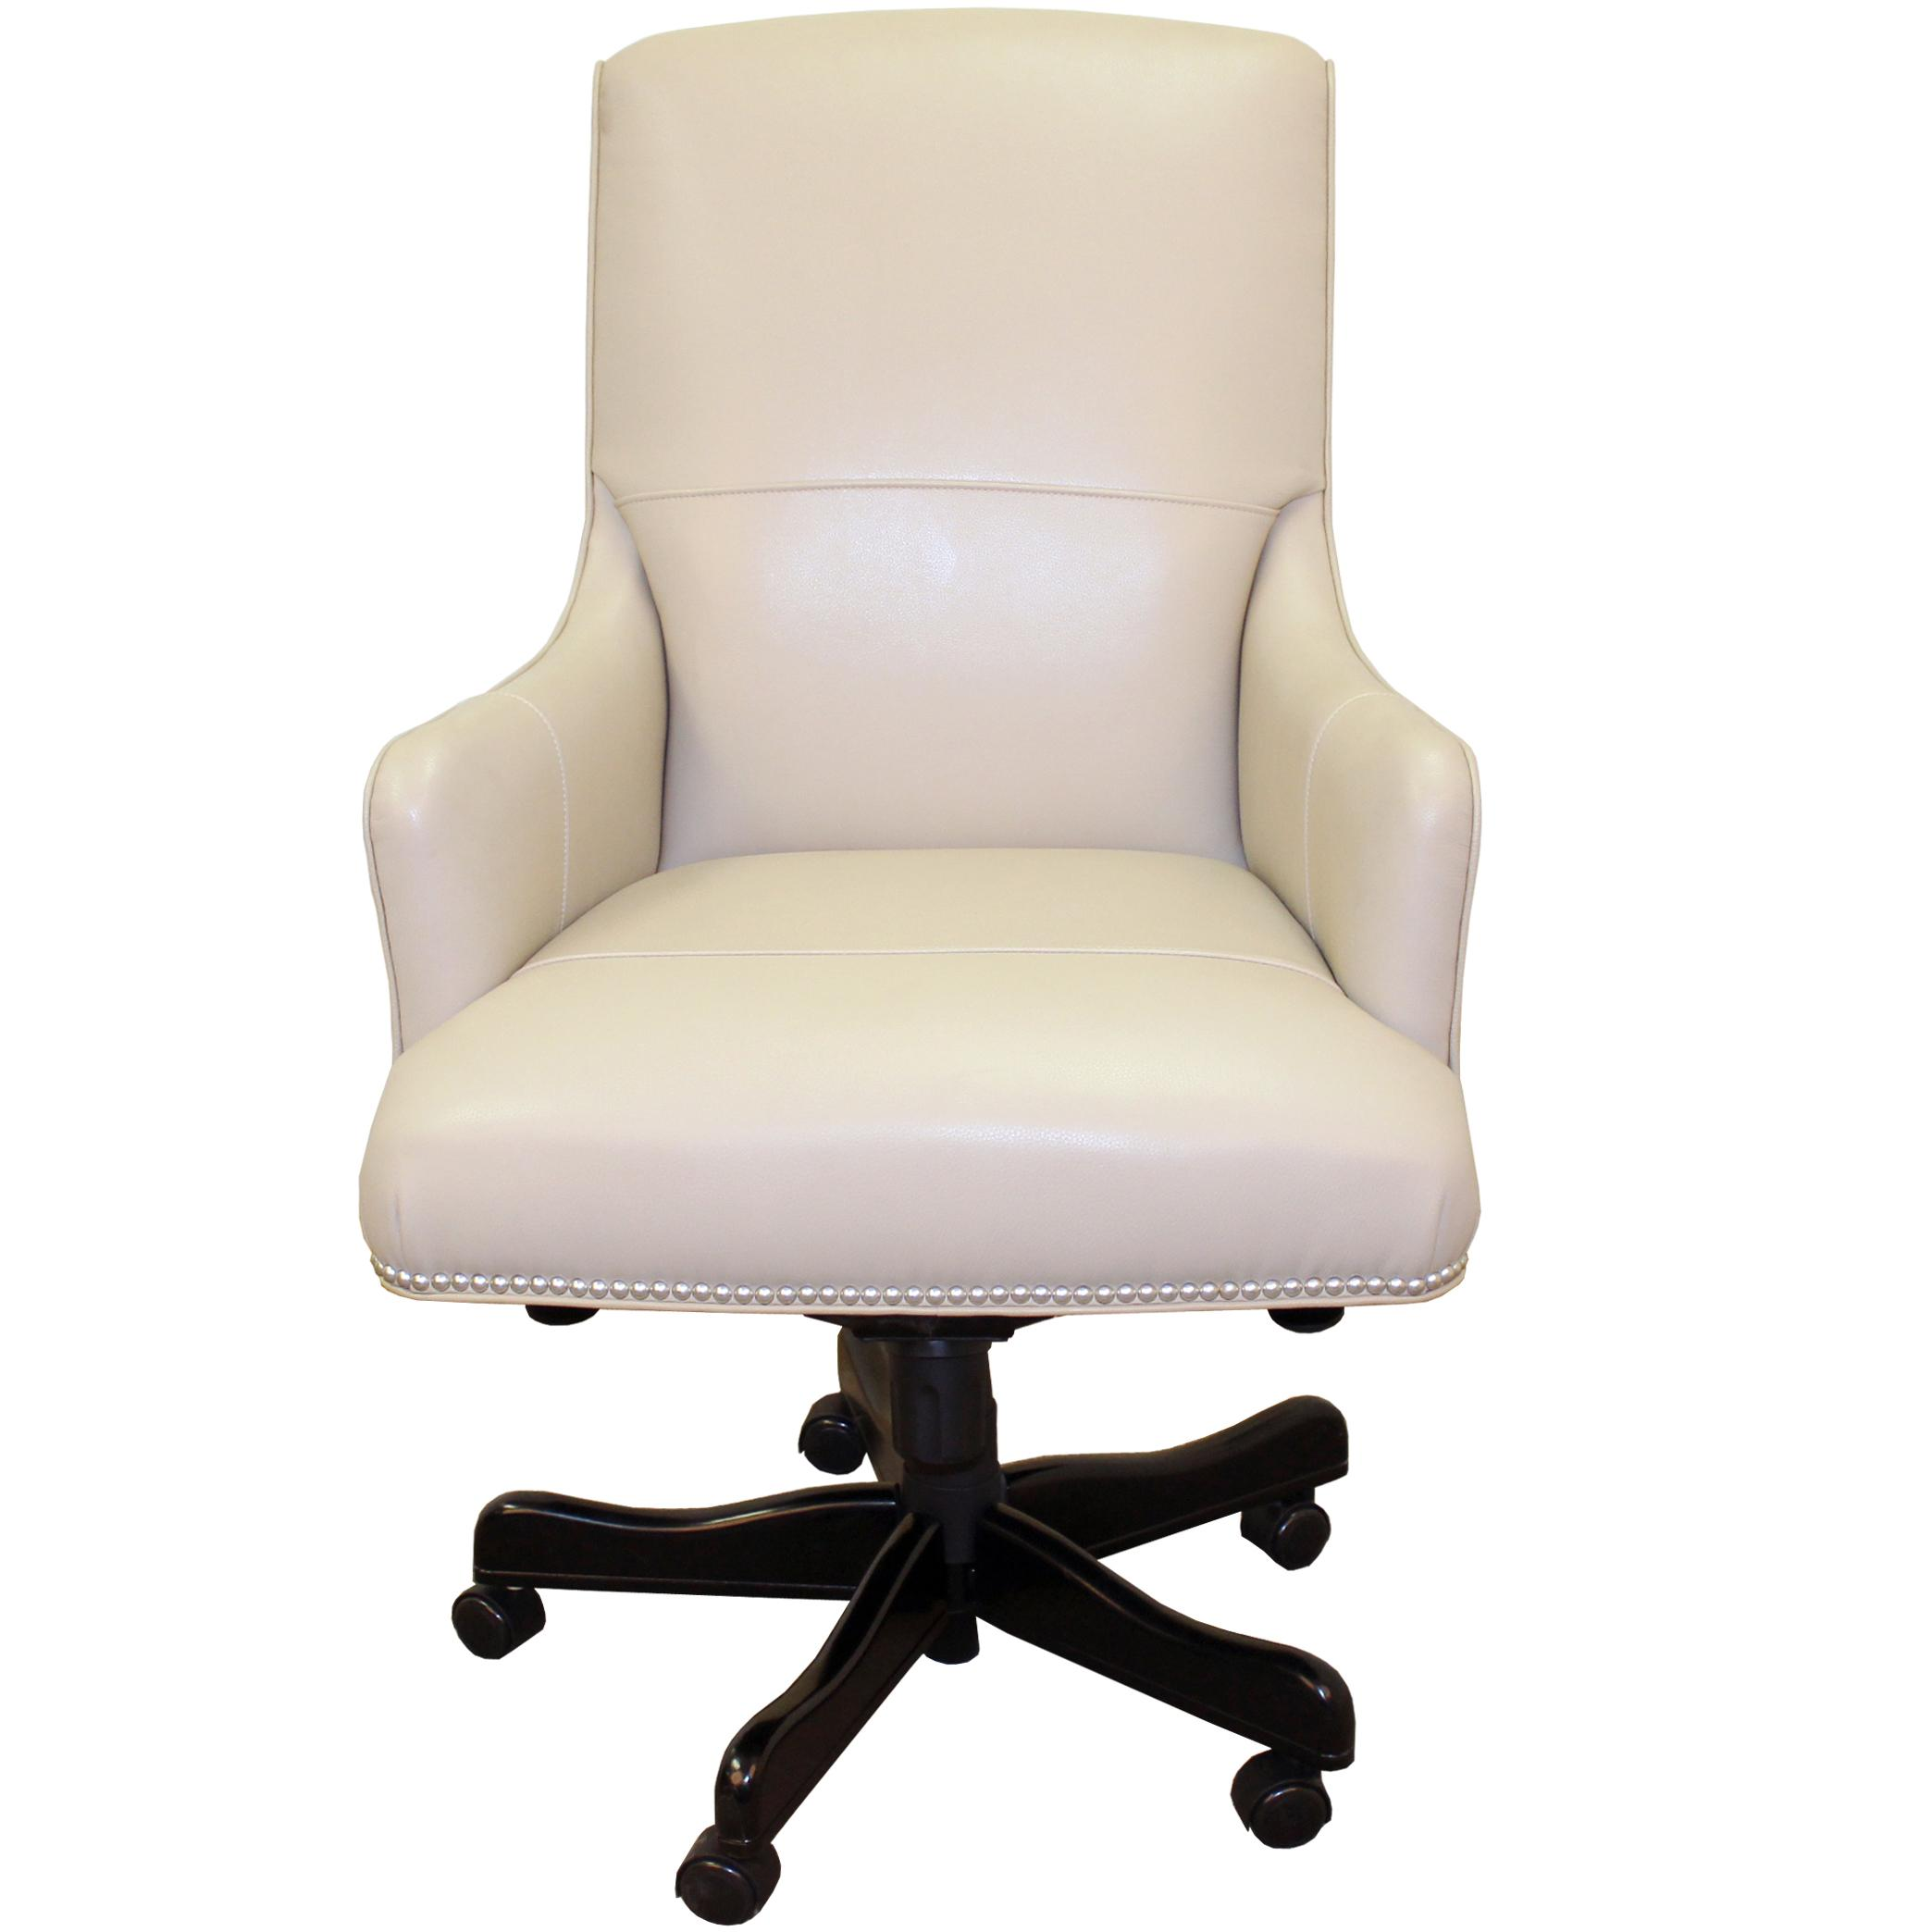 Parker Living Desk Chairs Executive Chair - Item Number: DC-106-BI